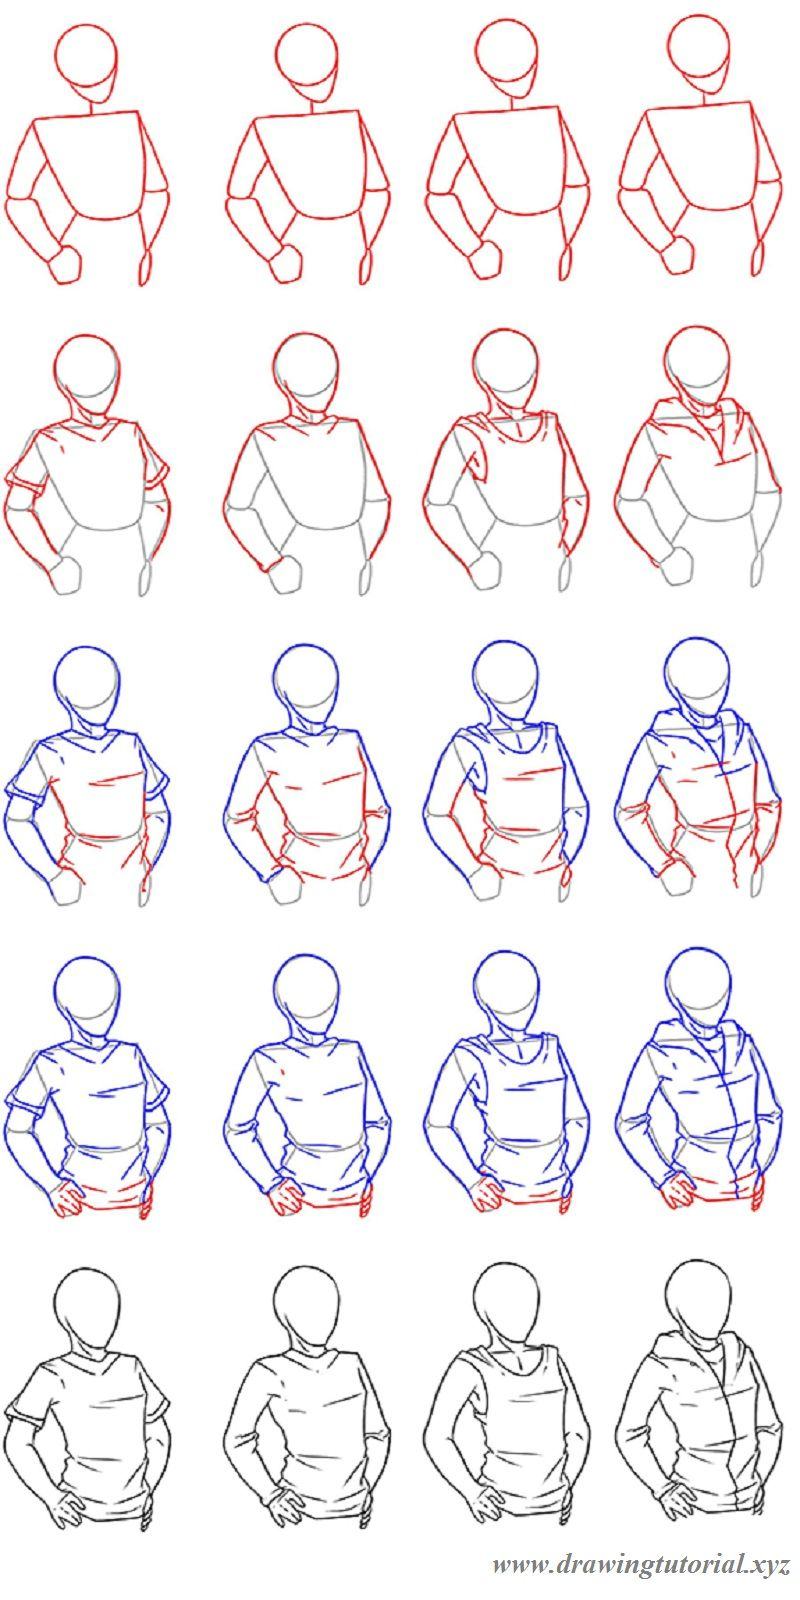 How To Draw Clothing How To Draw A Man Or A Woman Wearing A T Shirt A Top Or A Hoodie Step By Step Tutorial Drawi Lips Drawing Drawings Drawing Tutorial